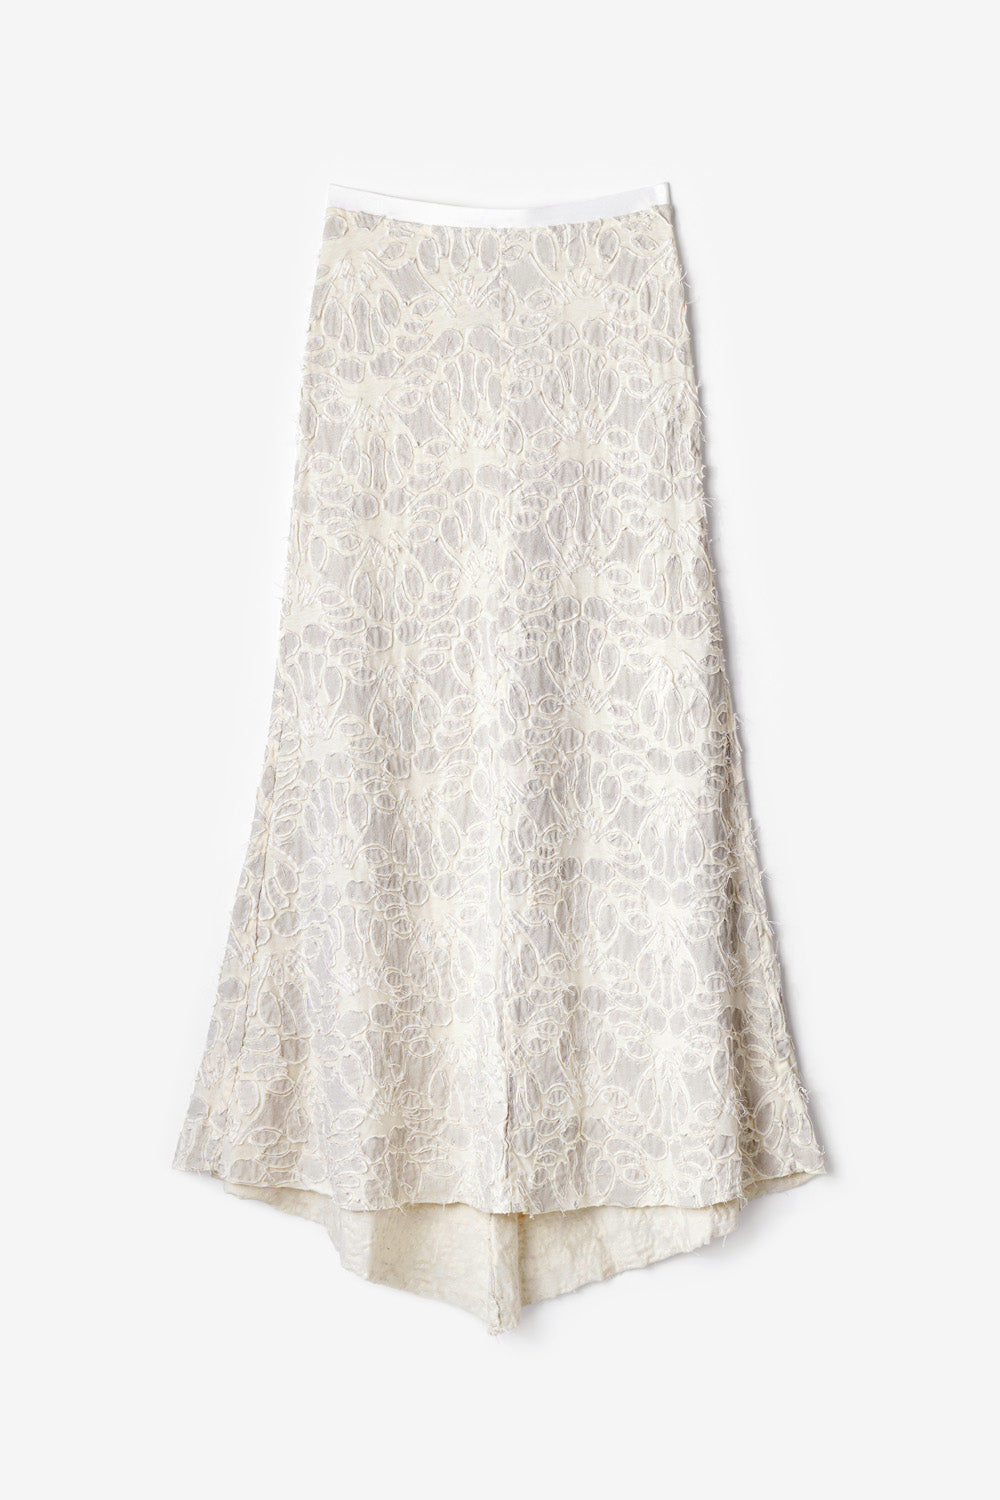 Alabama Chanin Anaise Skirt Hand Sewn Long Skirt with Lace Pattern in Natural